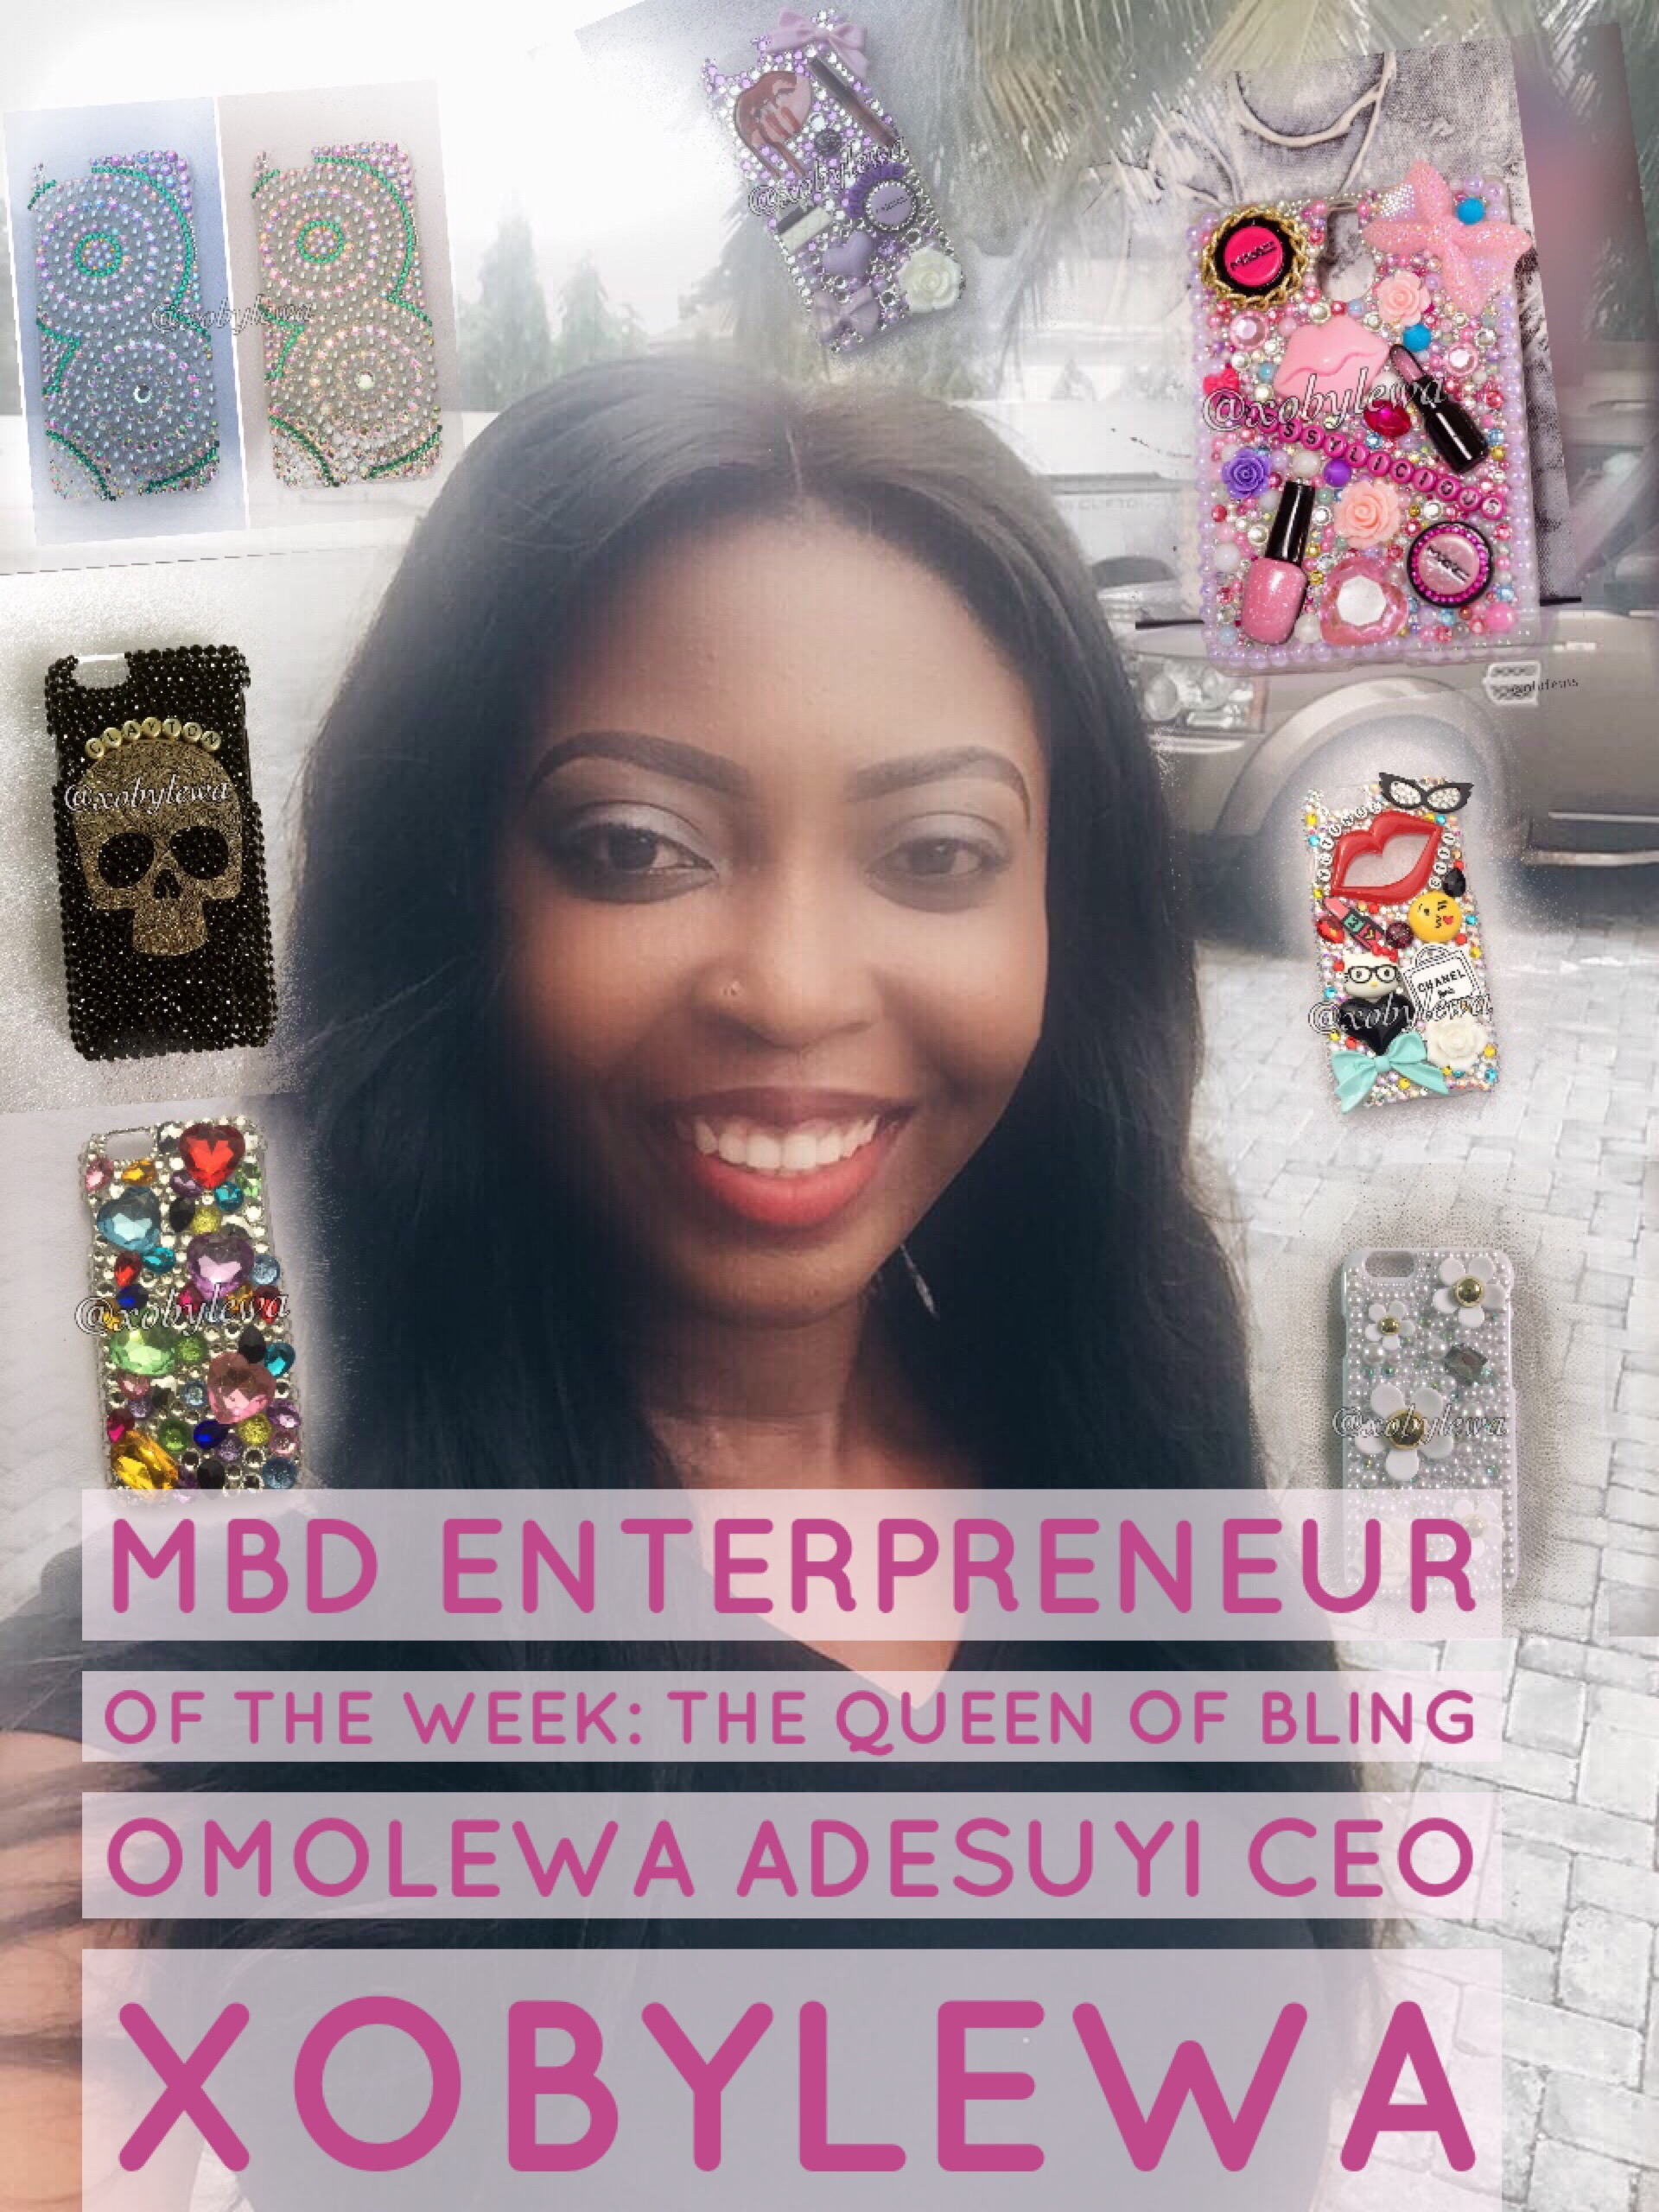 MBD Enterpreneur Of The Week: Meet The Queen Of Bling Omolewa Adesuyi CEO Xobylewa